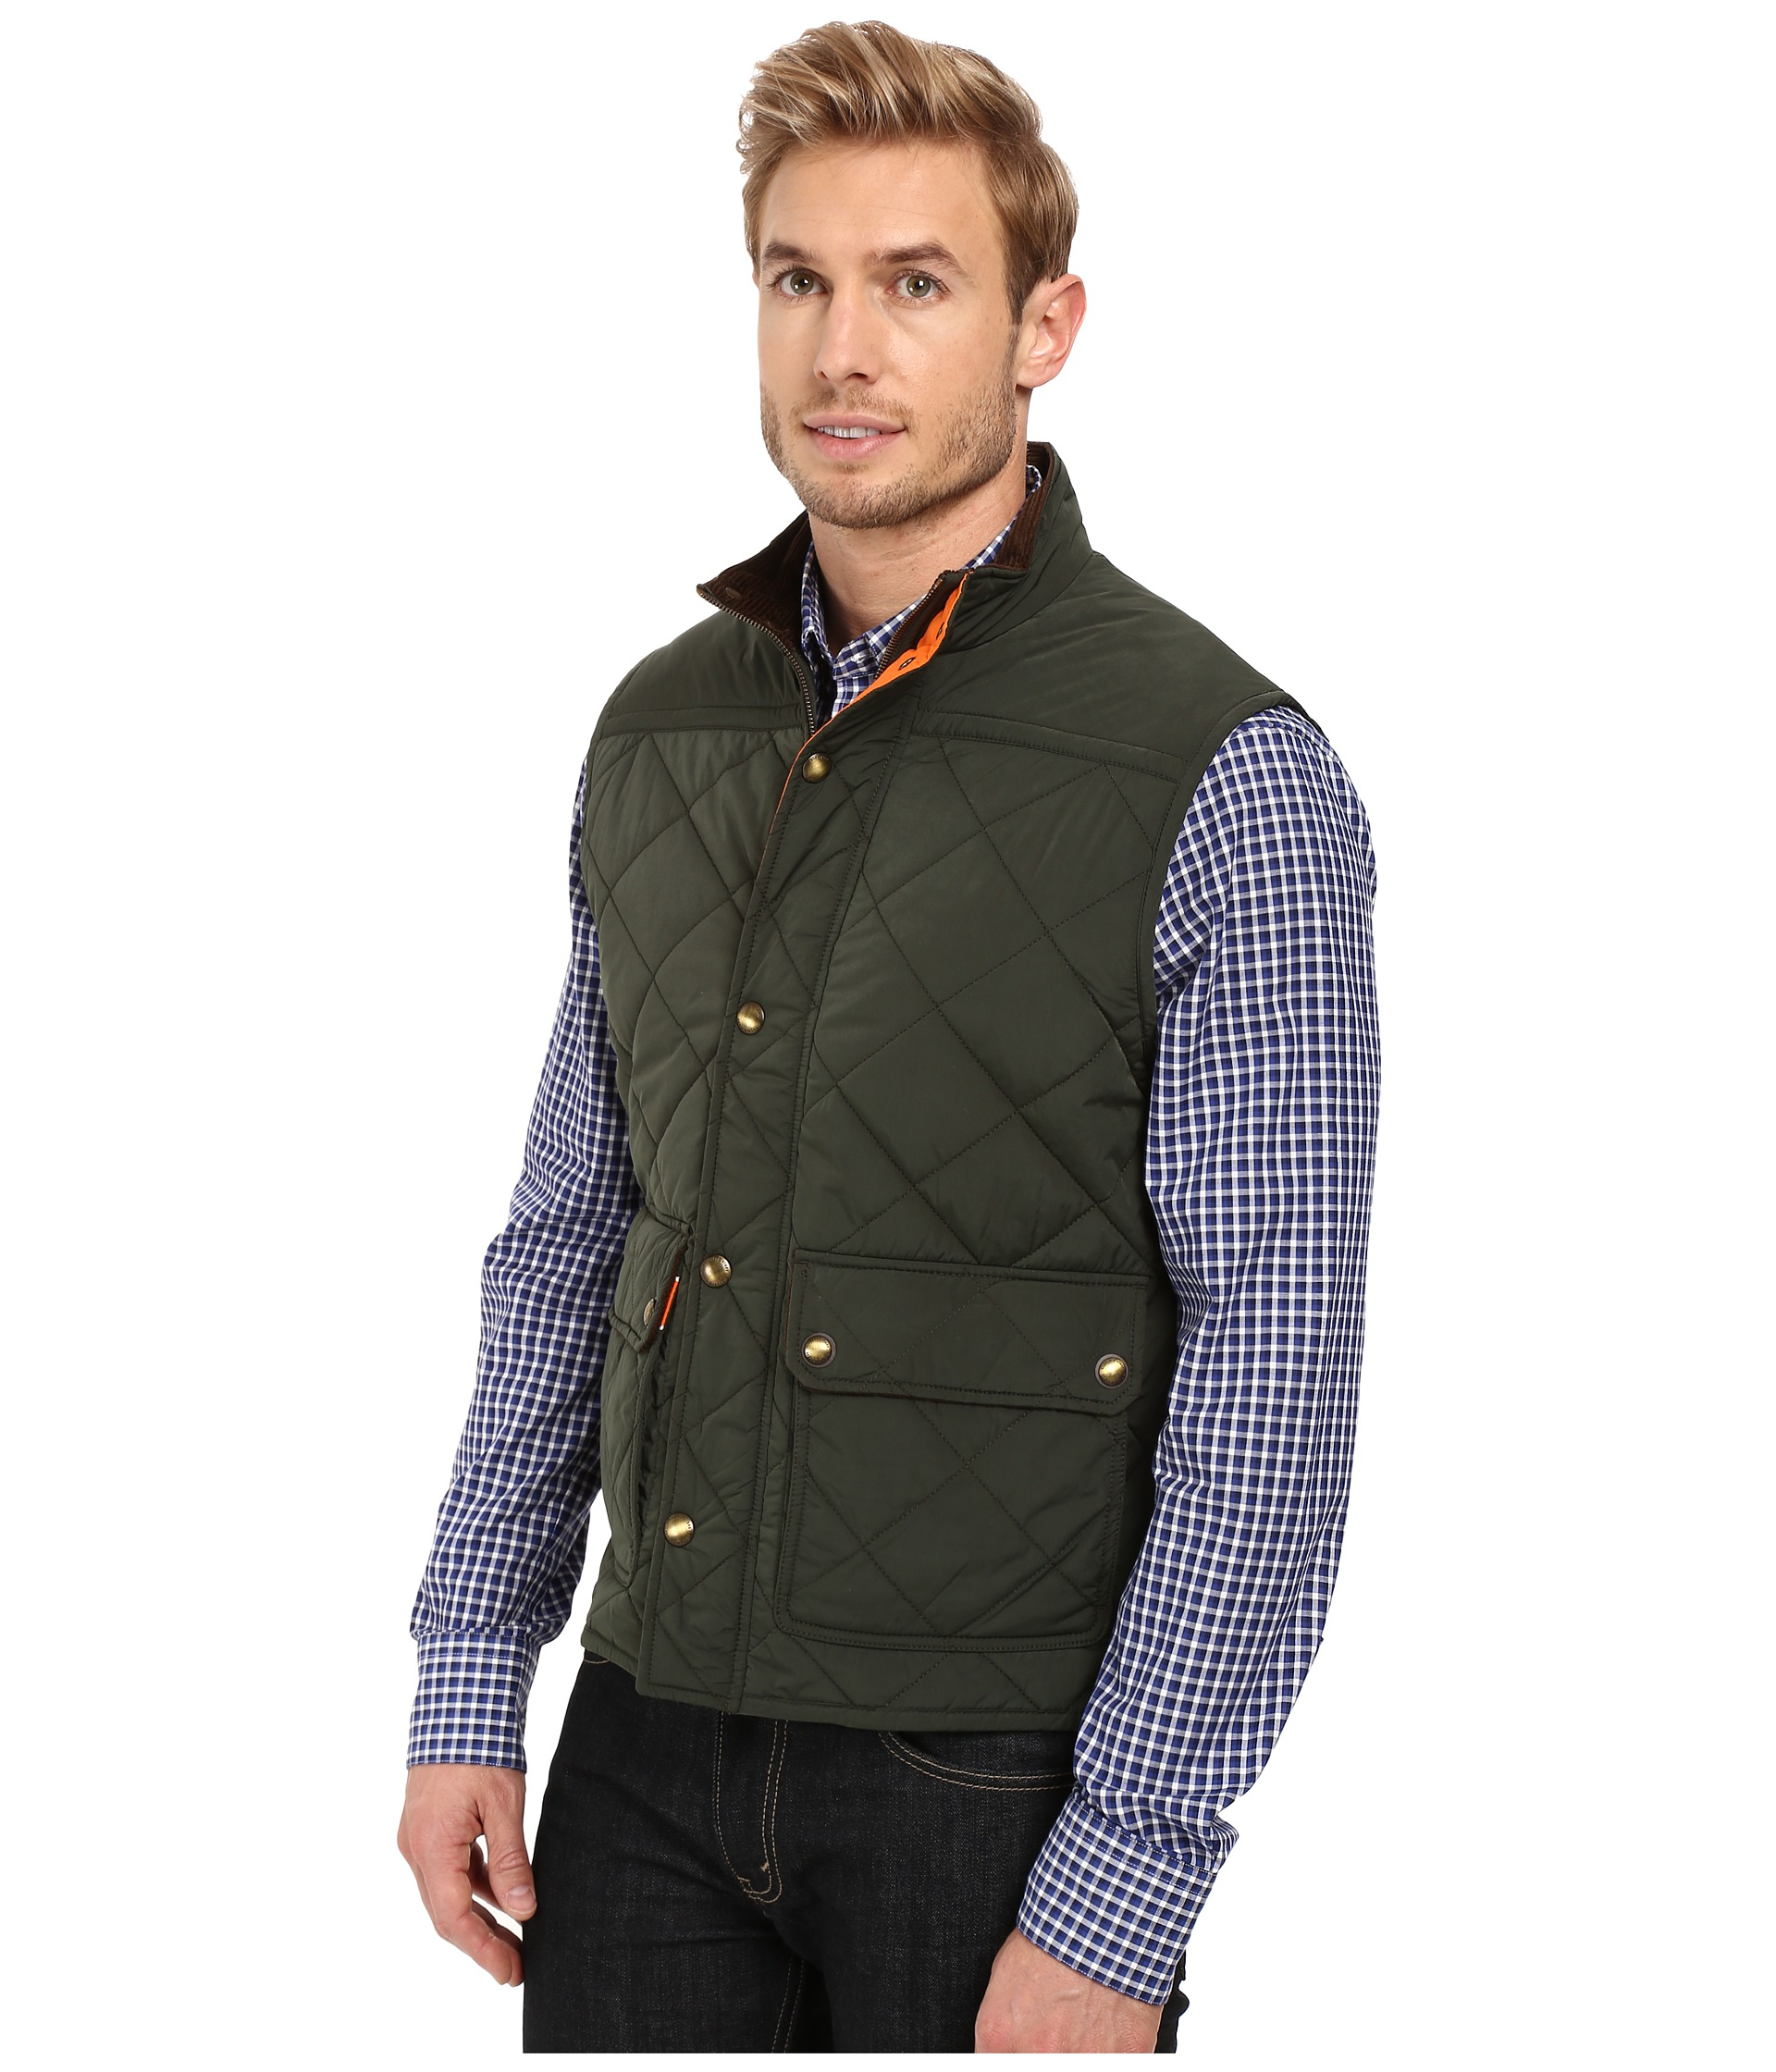 Vineyard Vines Quilted Vest Charleston Green Zappos Com